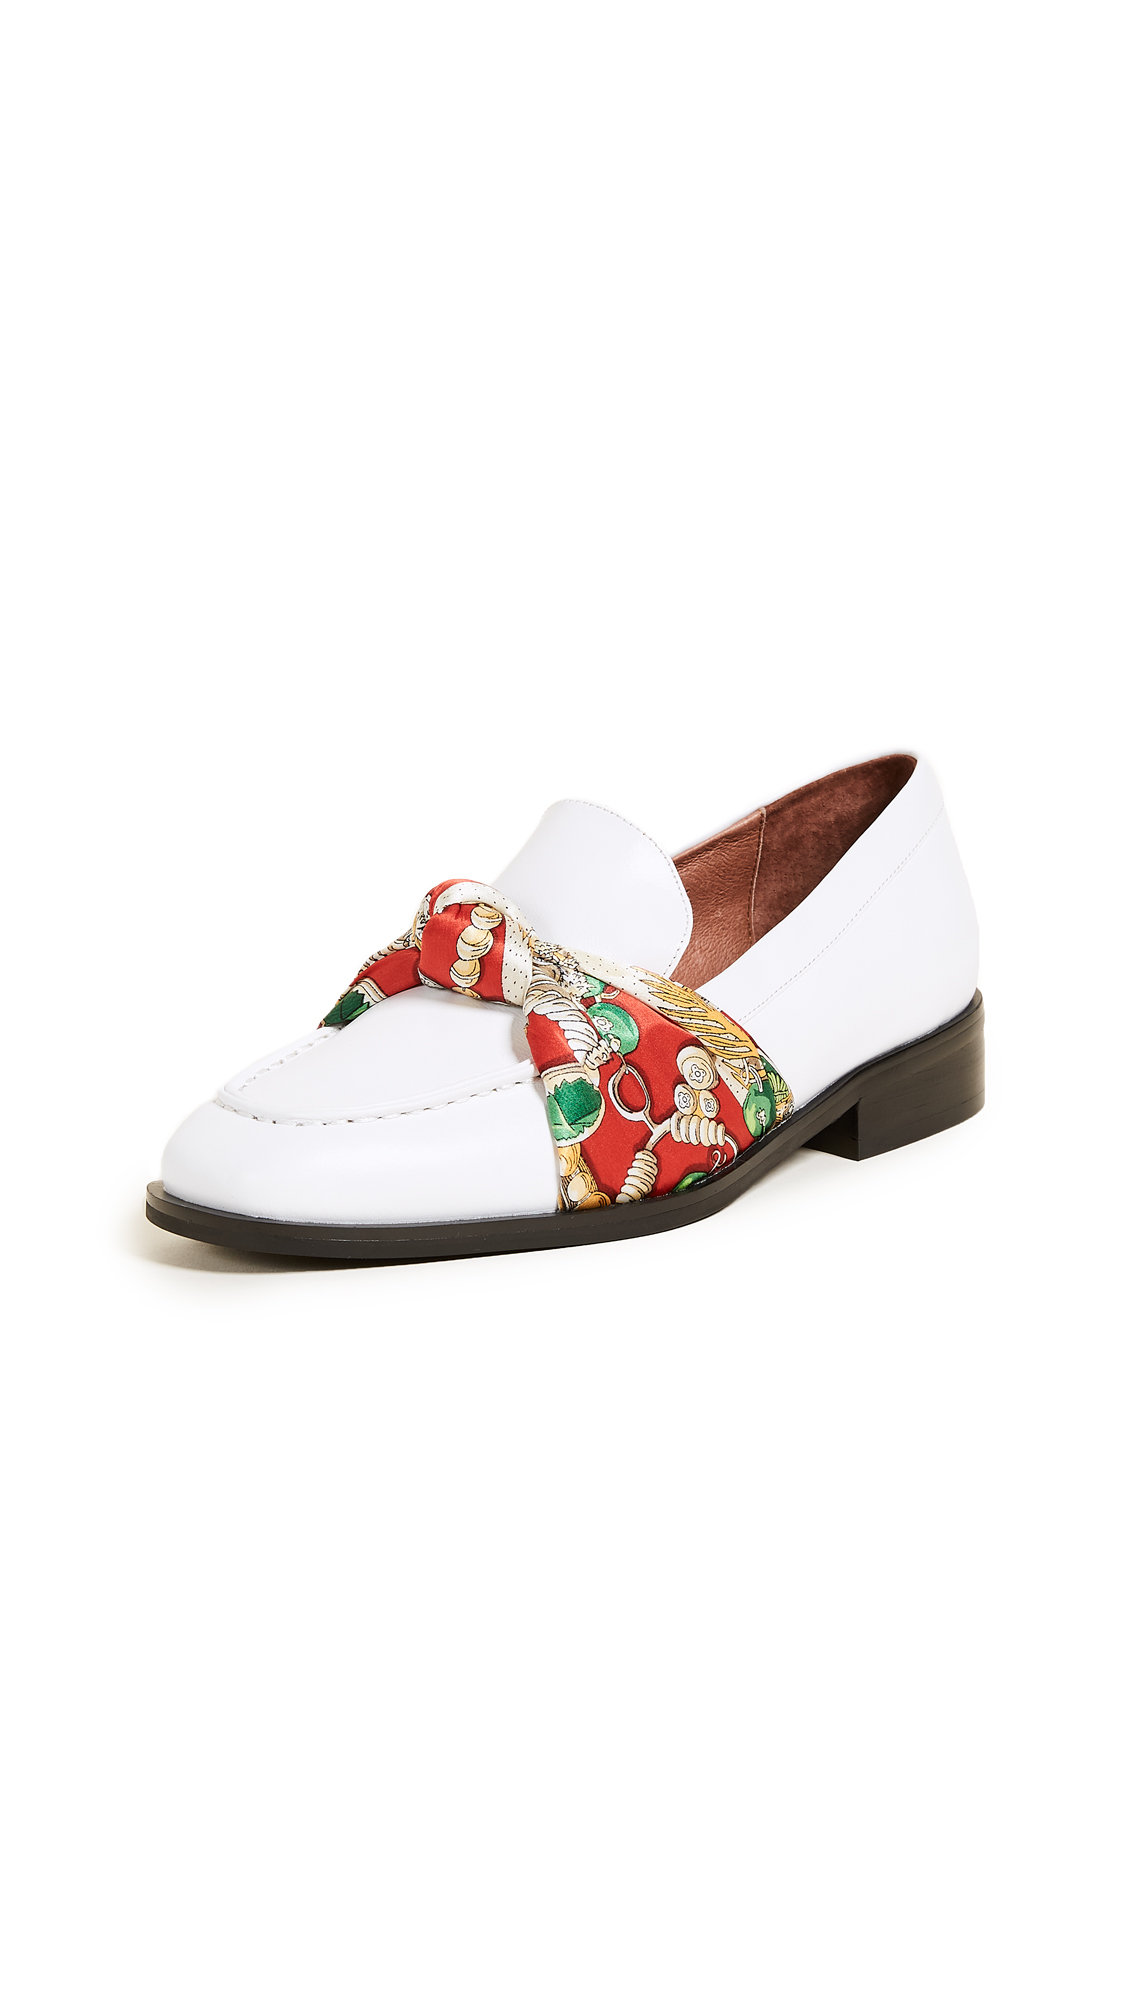 Jeffrey Campbell Bollero Scarf Loafers - White/Red